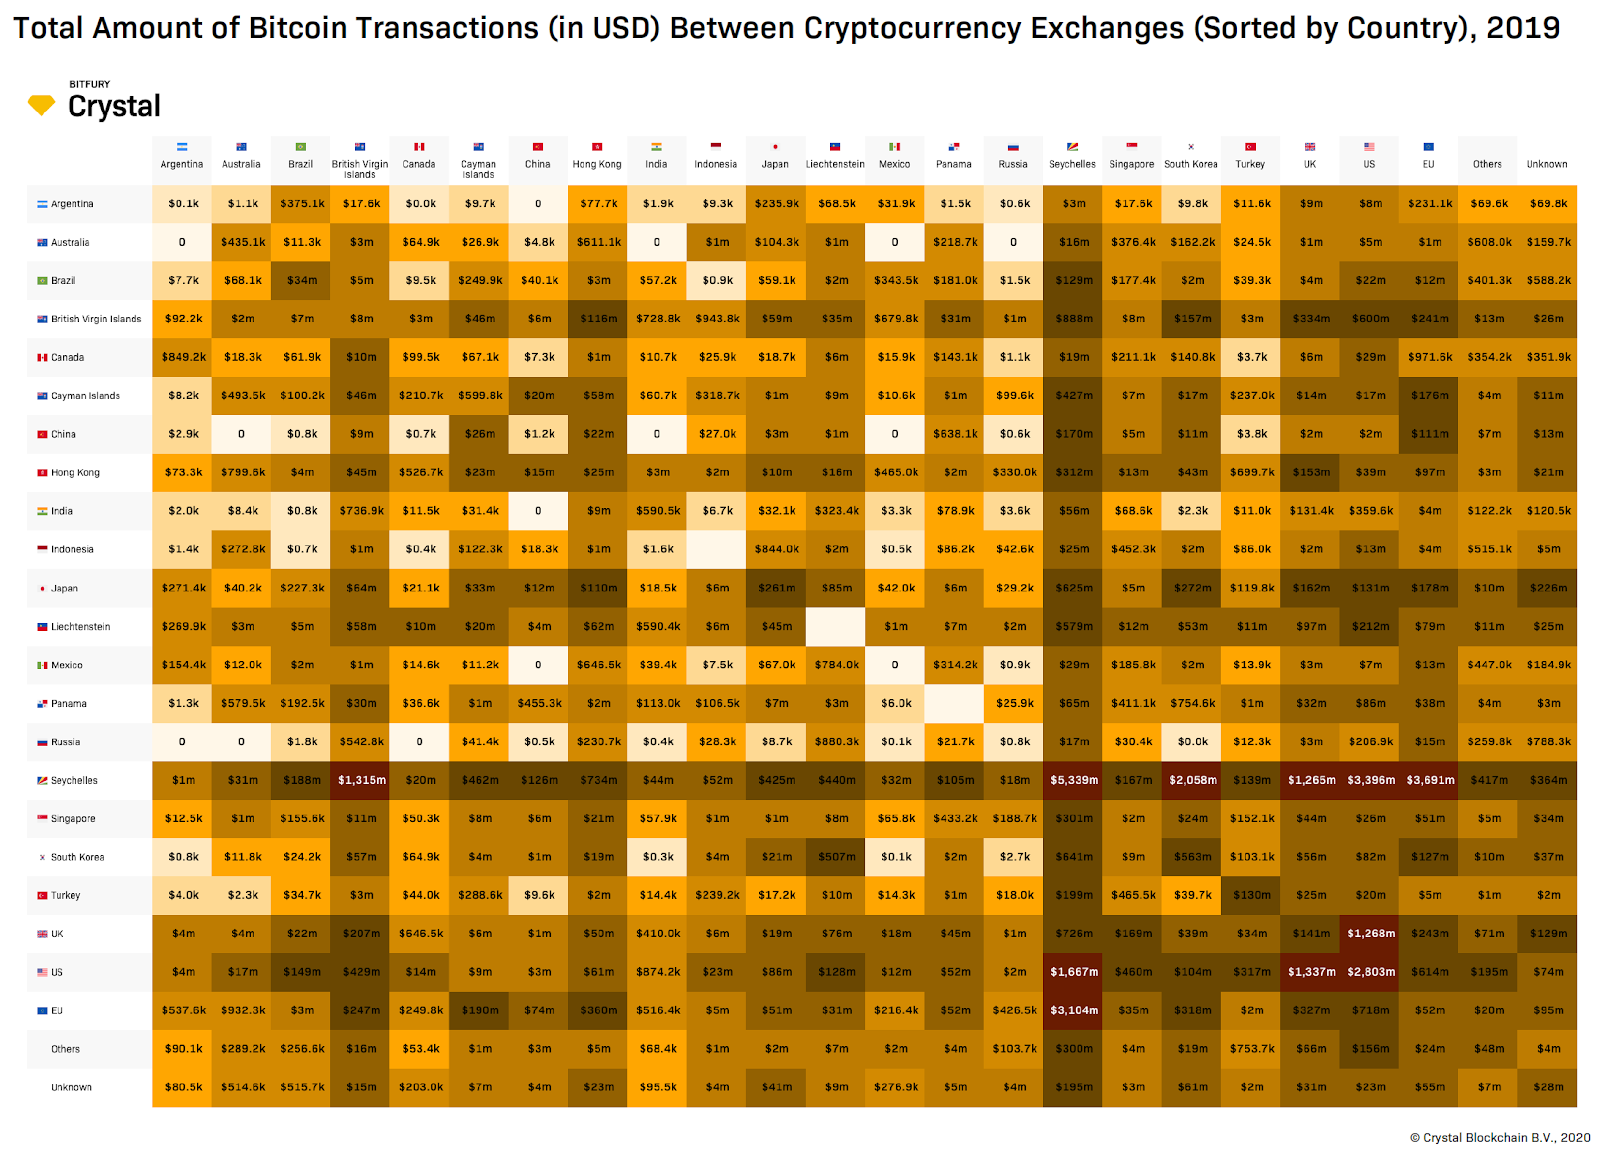 International Flow of Bitcoins